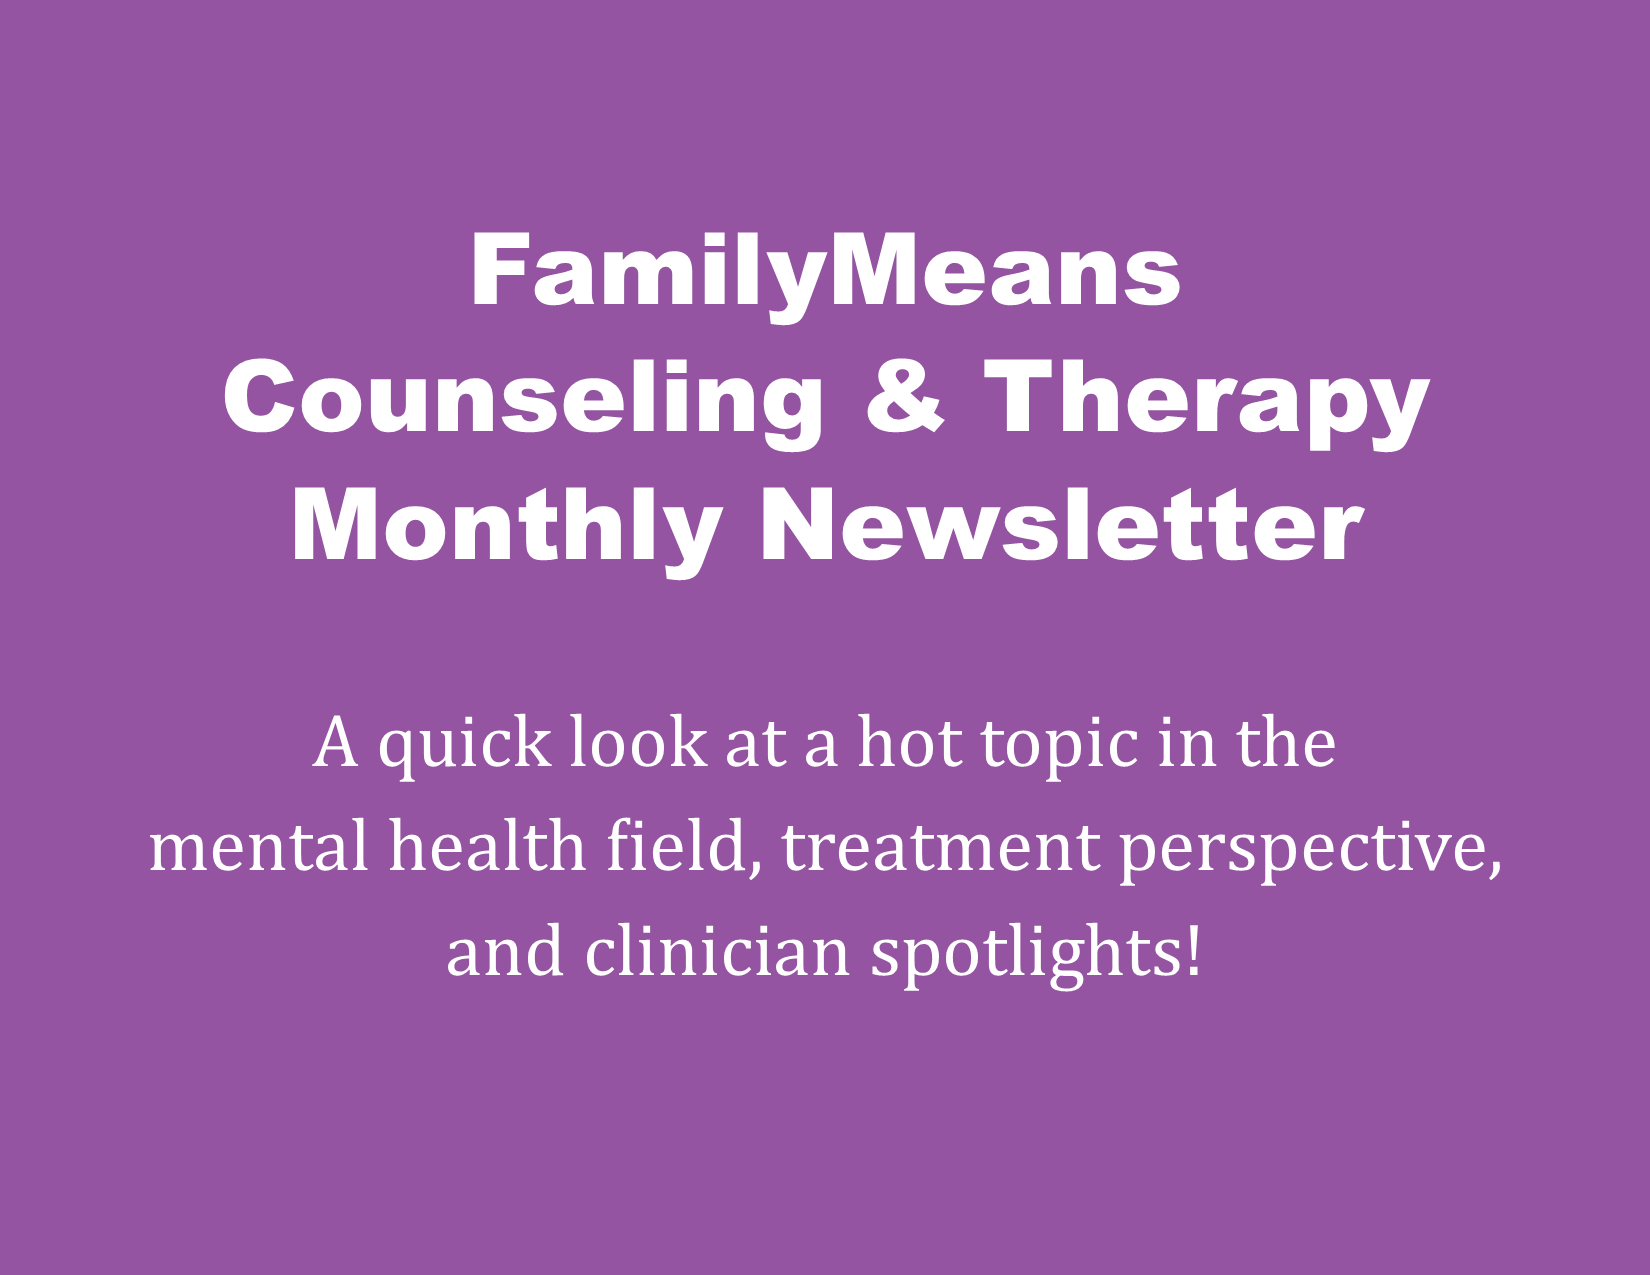 Counseling & Therapy Newsletter February 2020